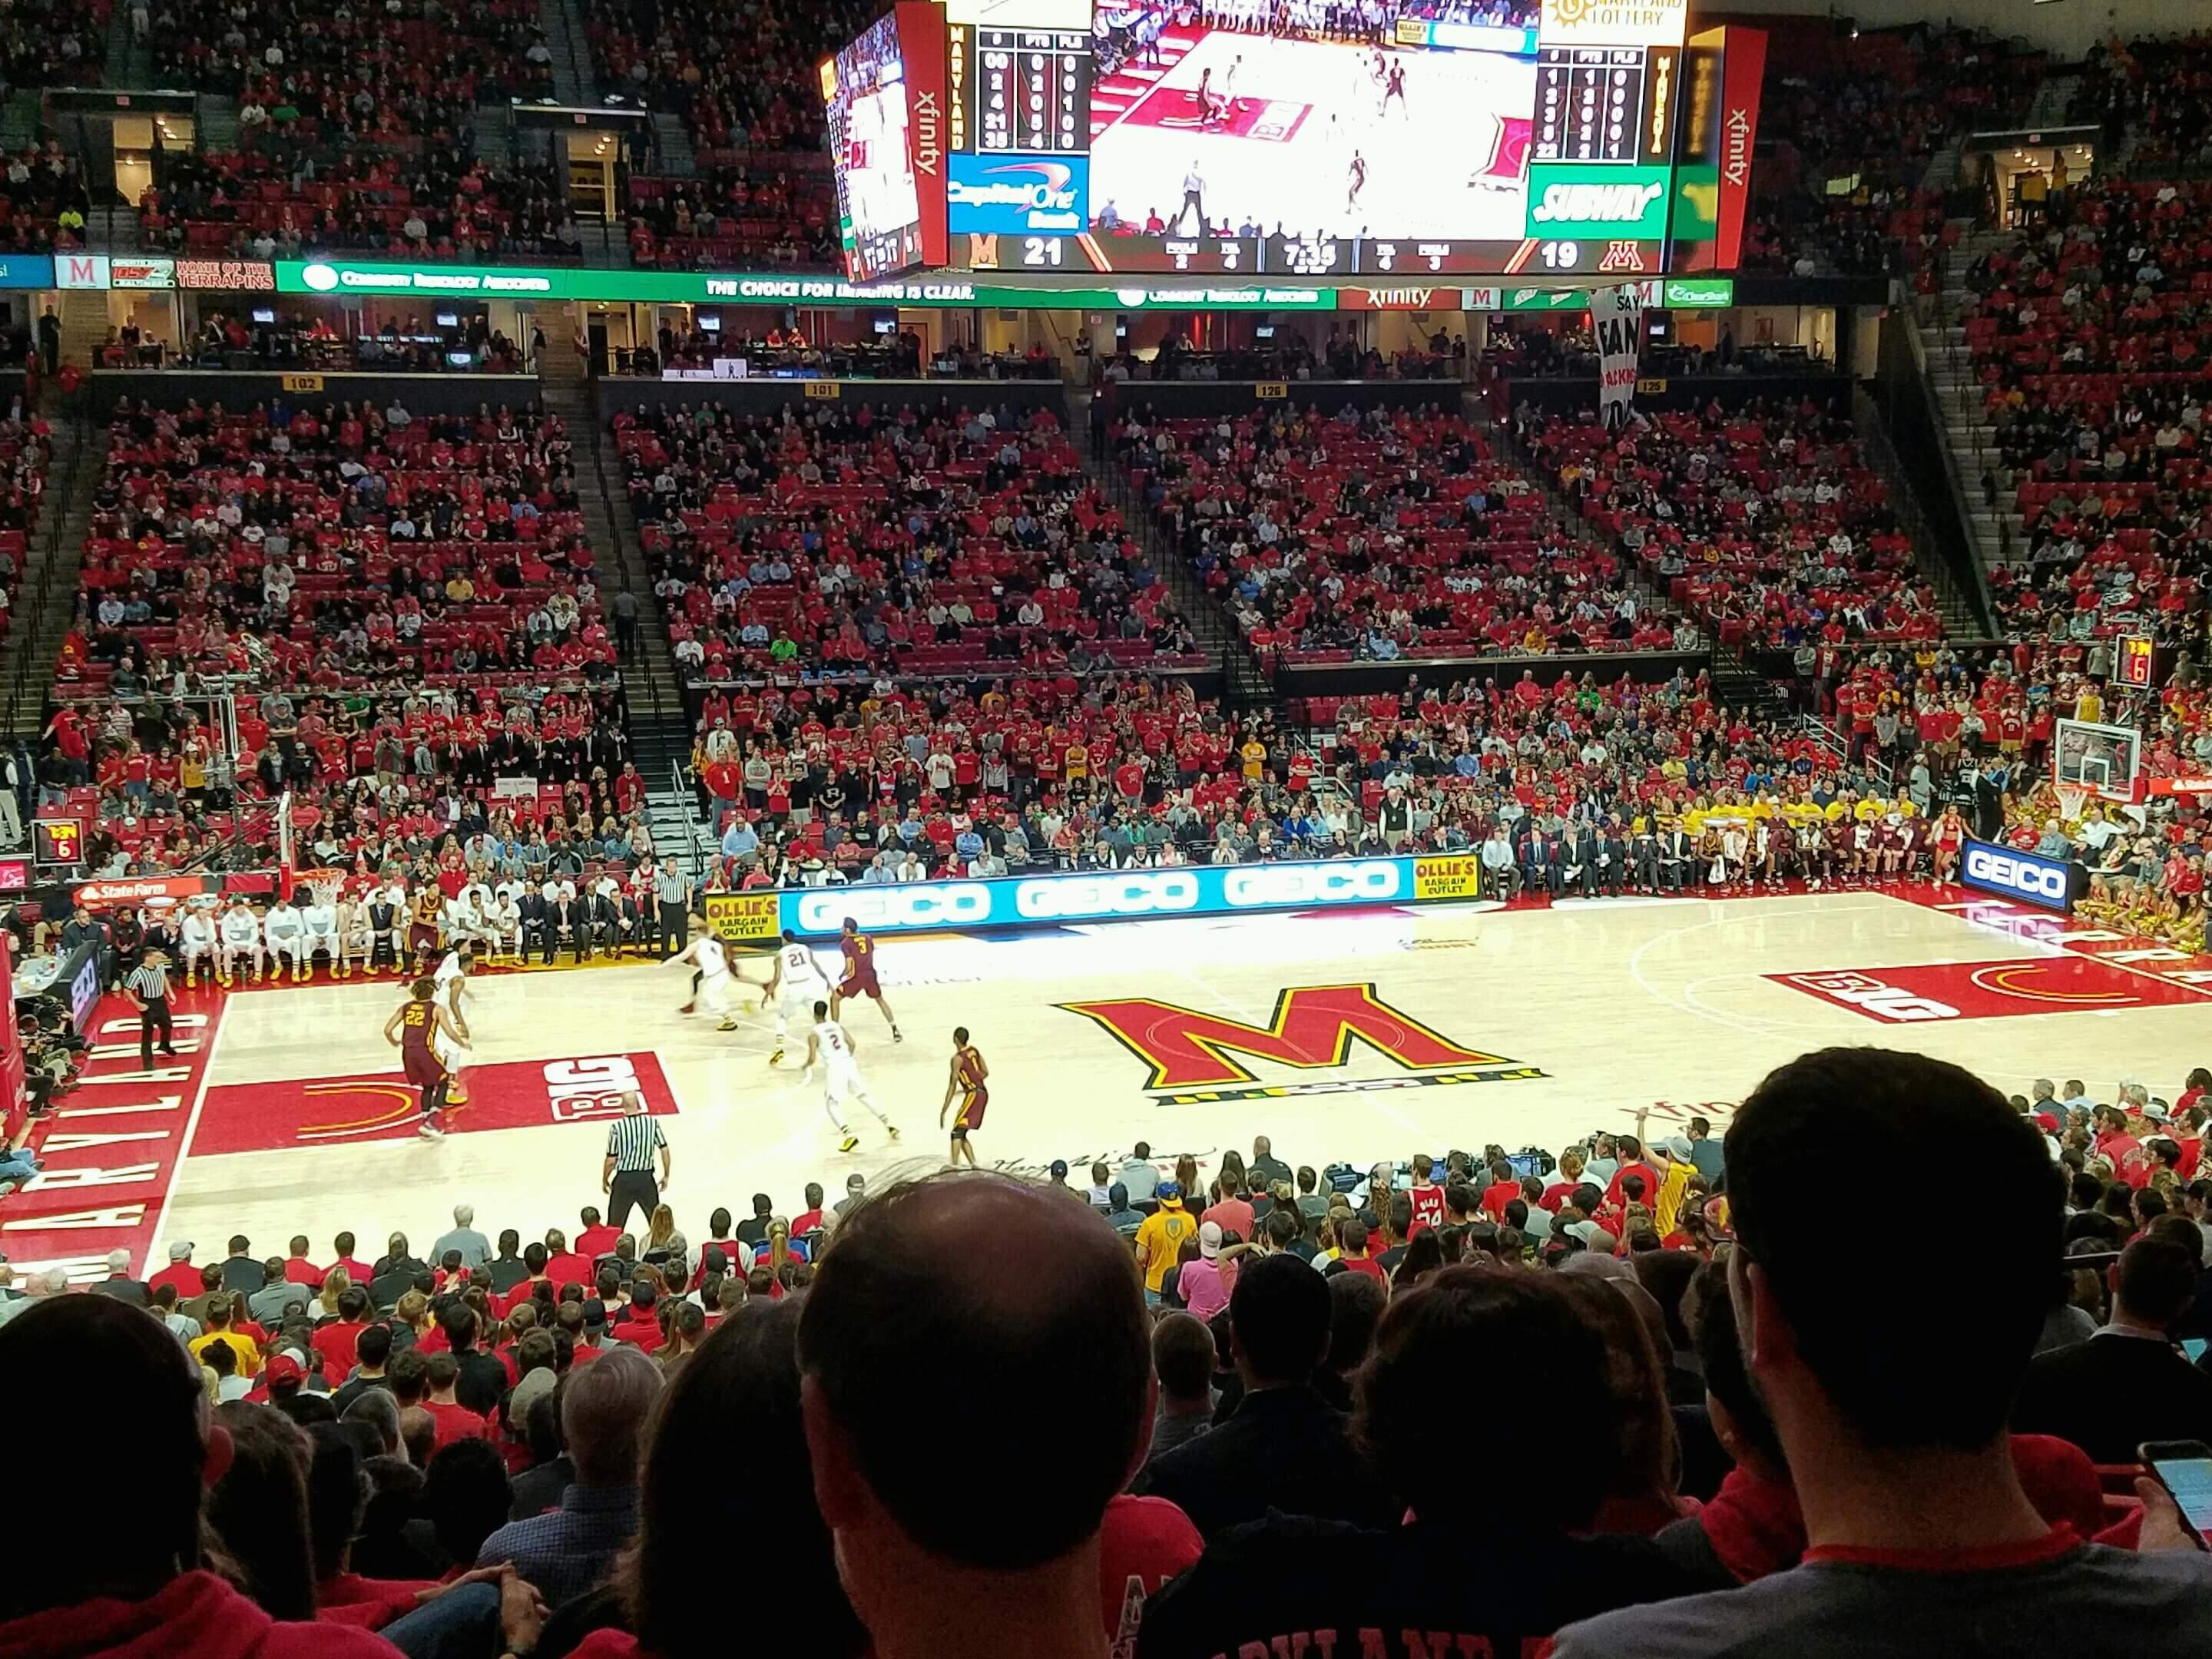 Xfinity Center (Maryland) Secção 113 Fila 15 Lugar 10